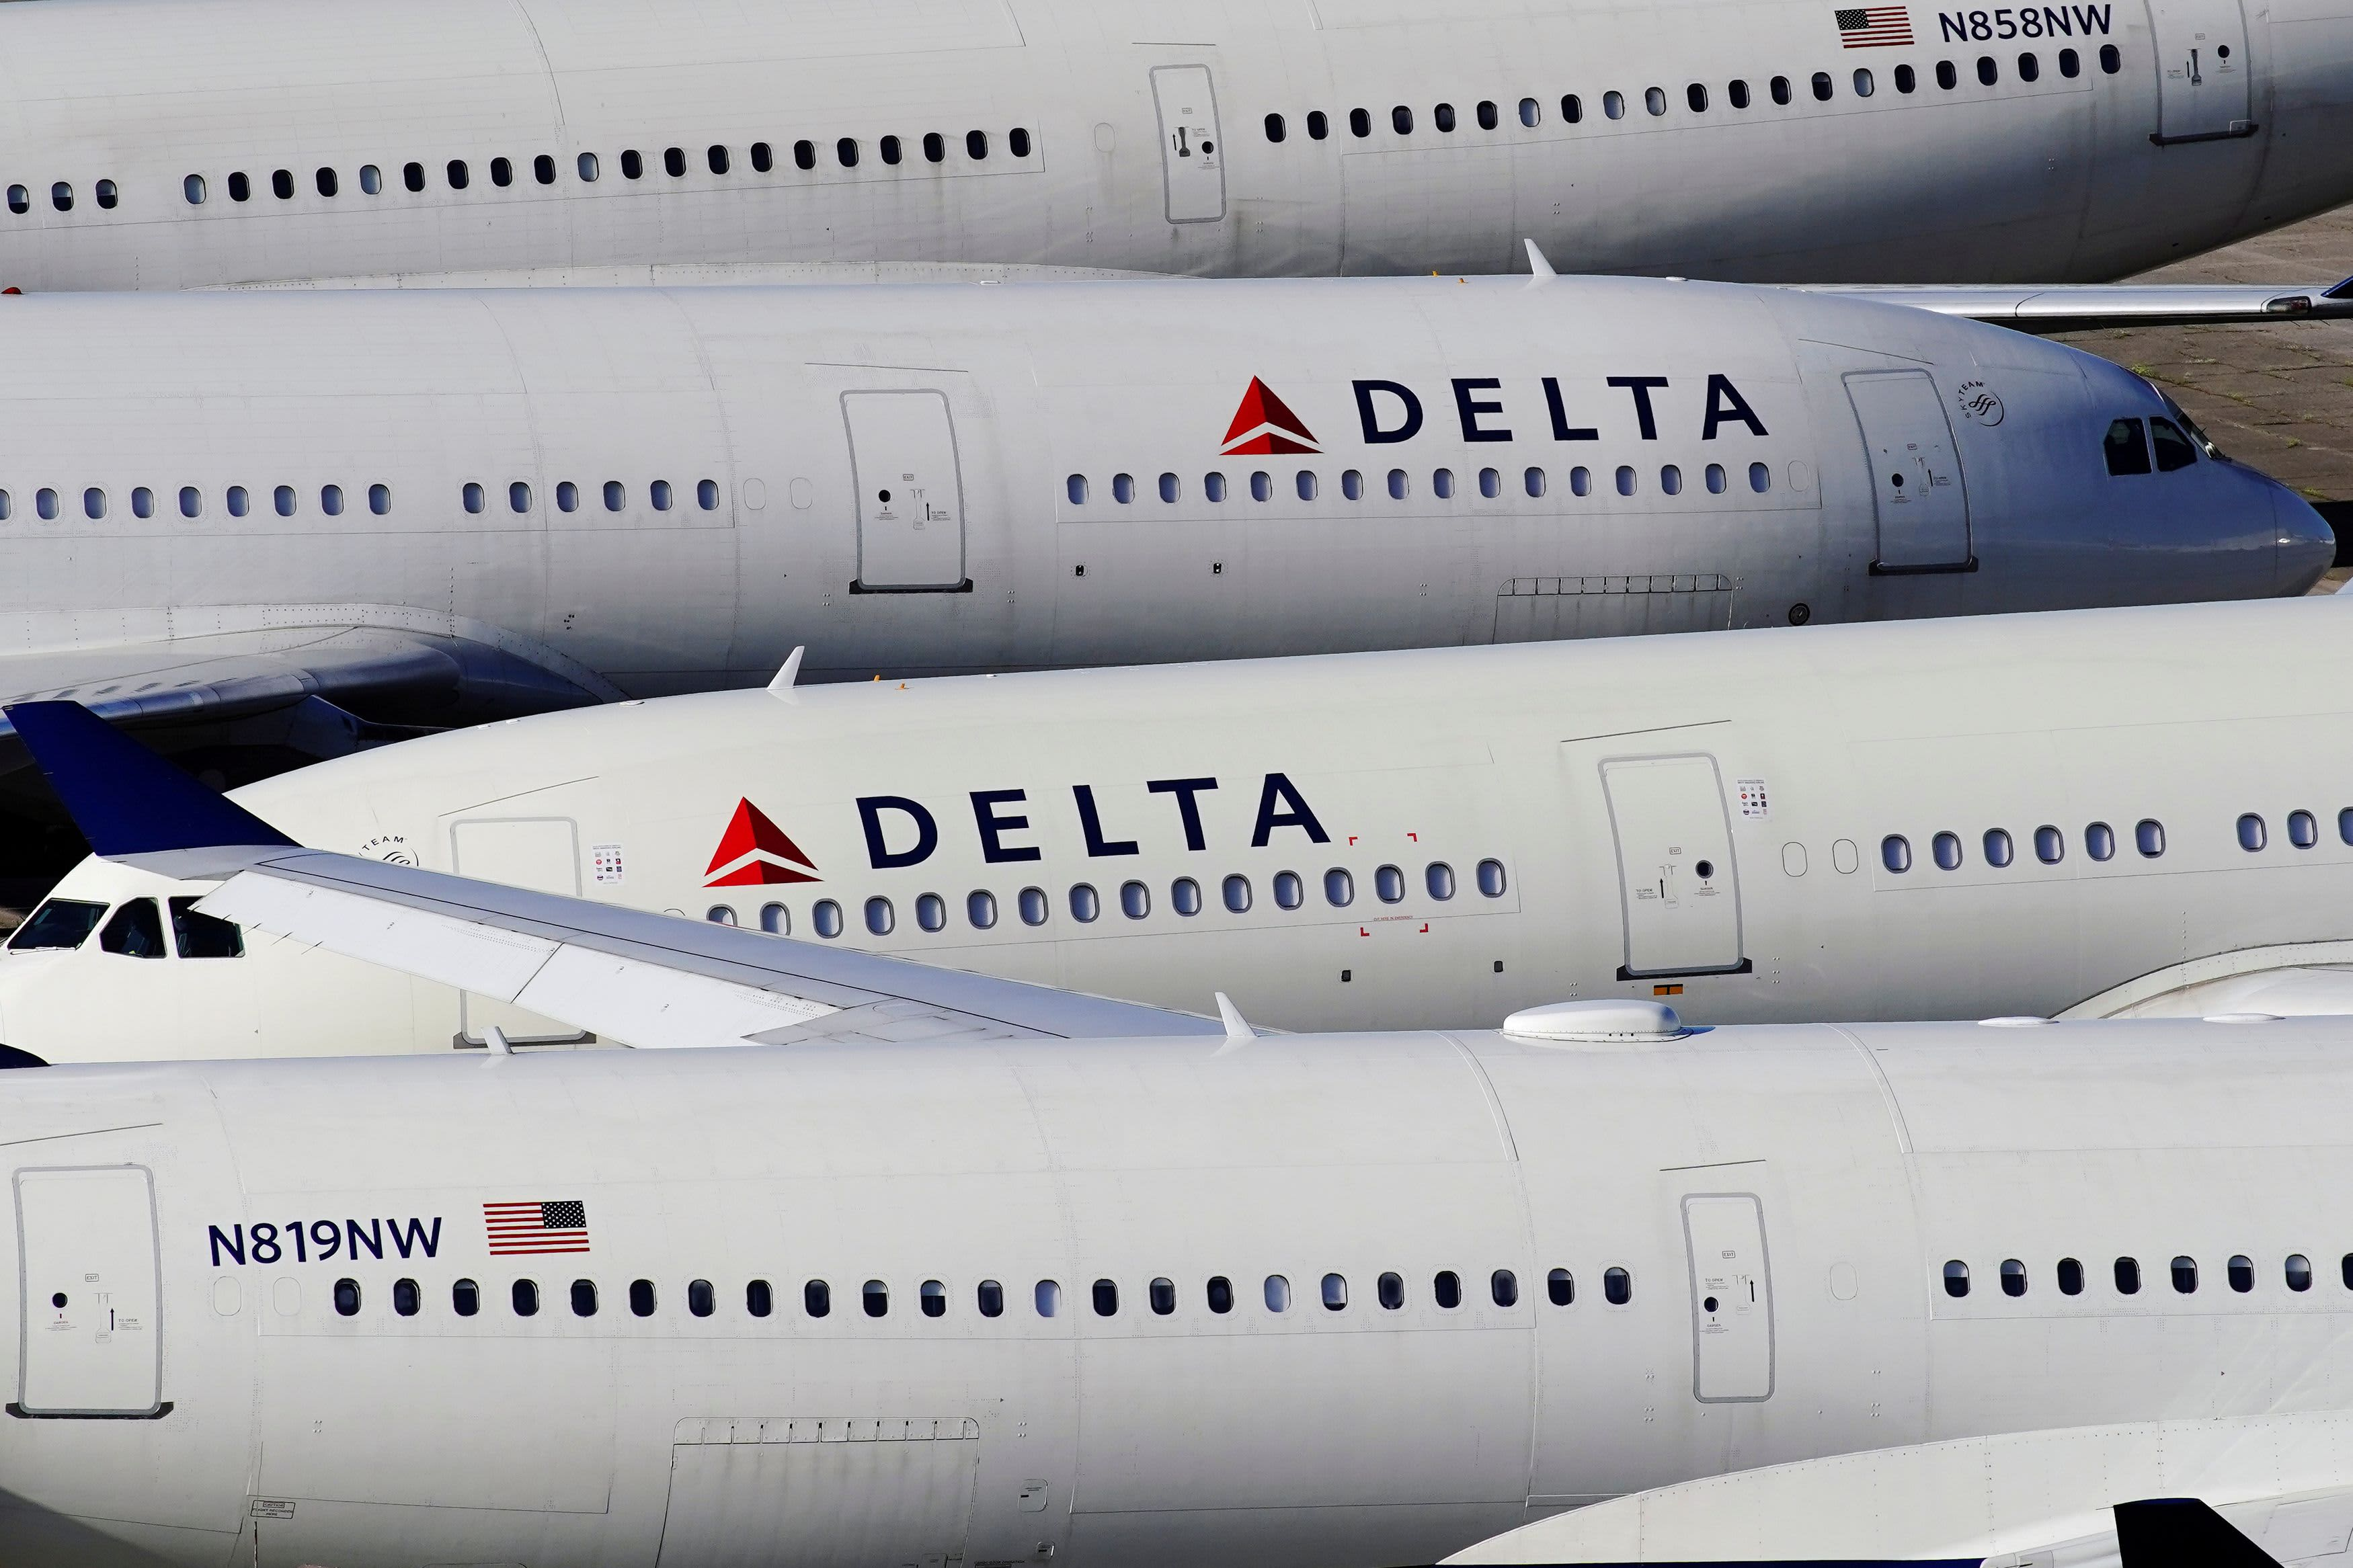 Delta will delay decision to furlough pilots until November, union says